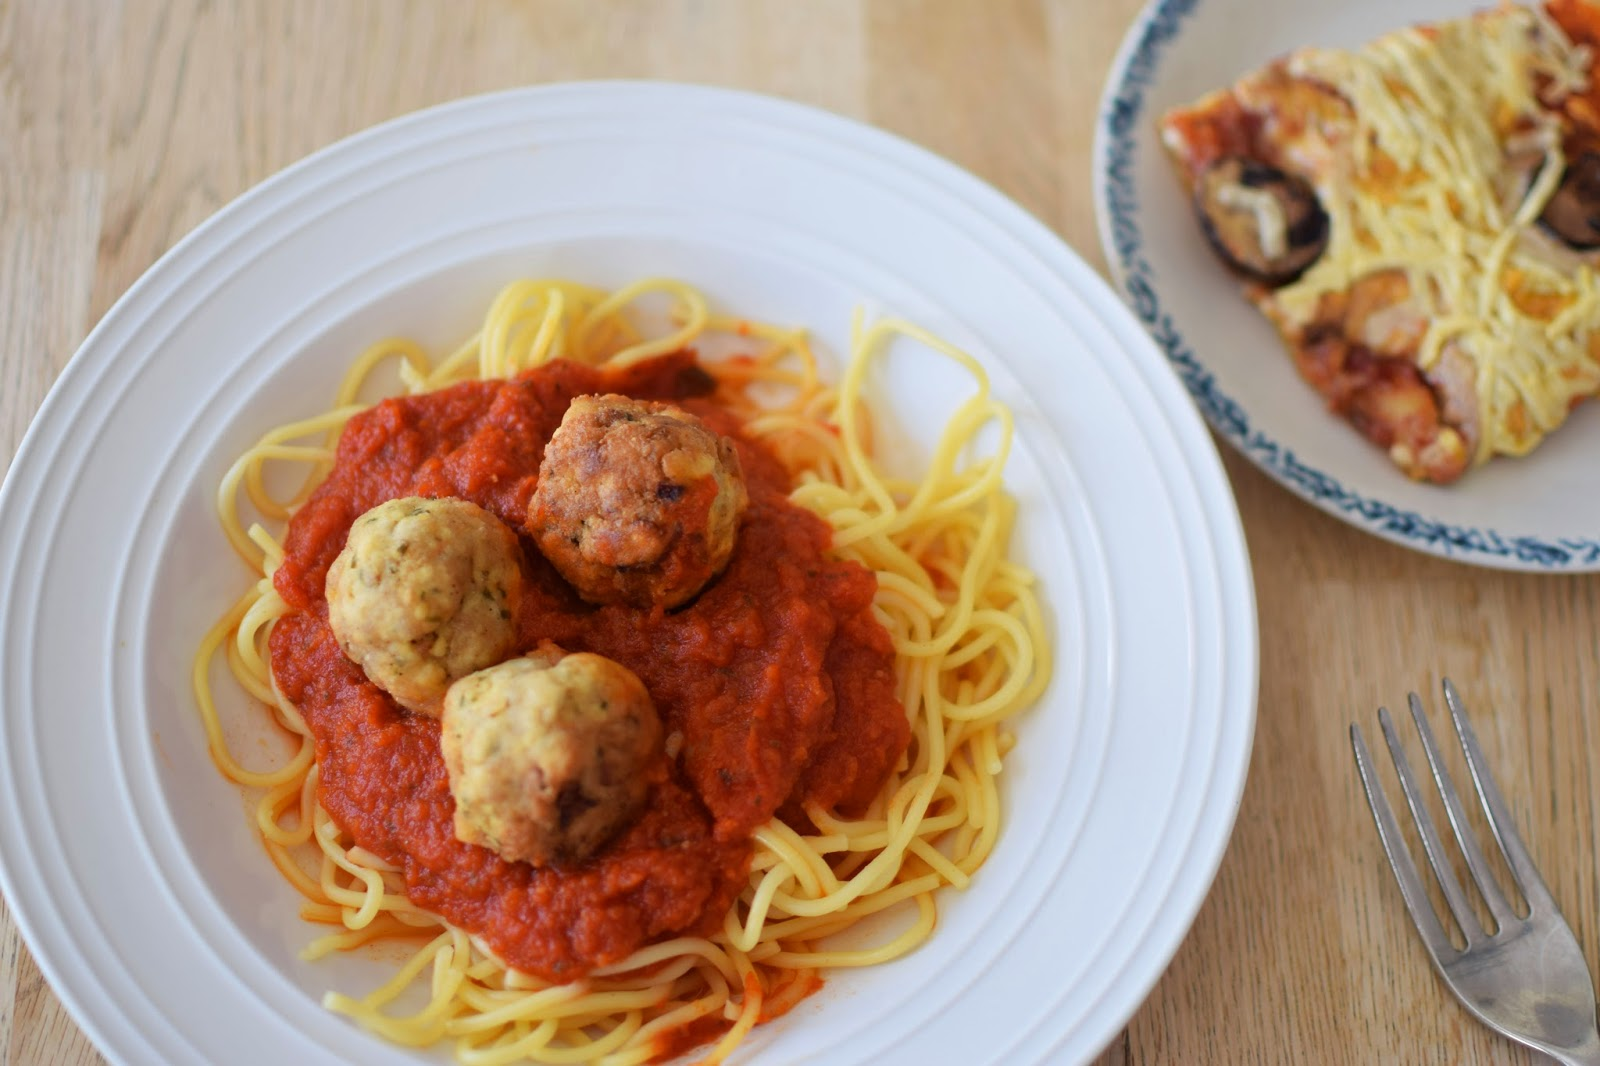 Spaghetti with Tofu Meatballs